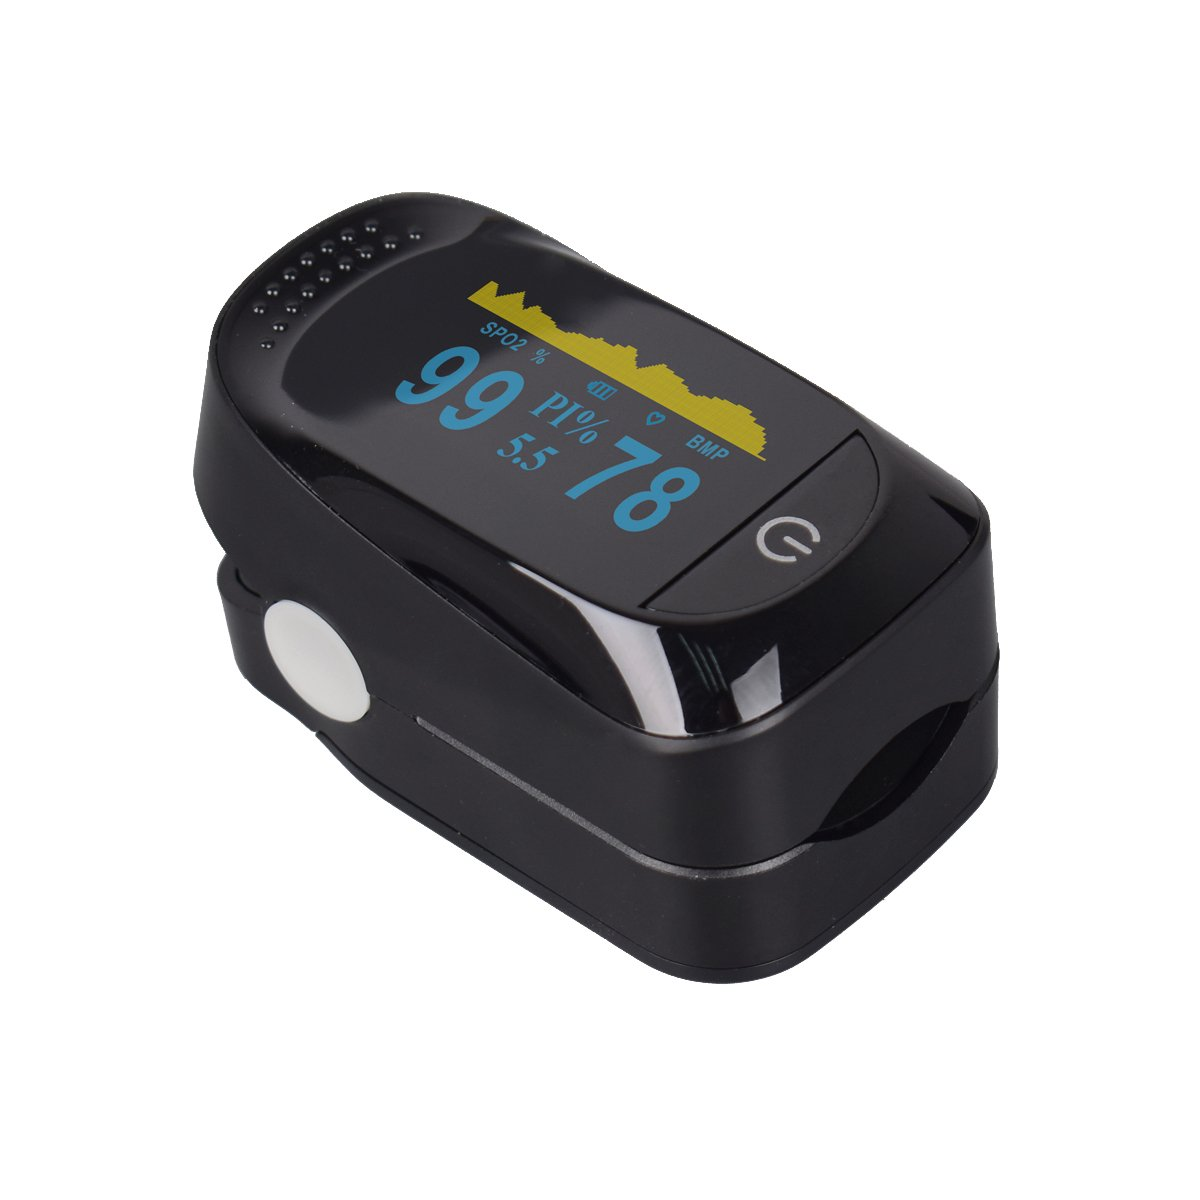 Fingertip Pulse Oximeter with Plethysmograph and Perfusion Index Measures SPO2 Finger Blood Oxygen Saturation Monitor, Perfusion Index, Pulse Rate,Mini Portable Size for Children,Adults by Glorified Mary (Image #5)